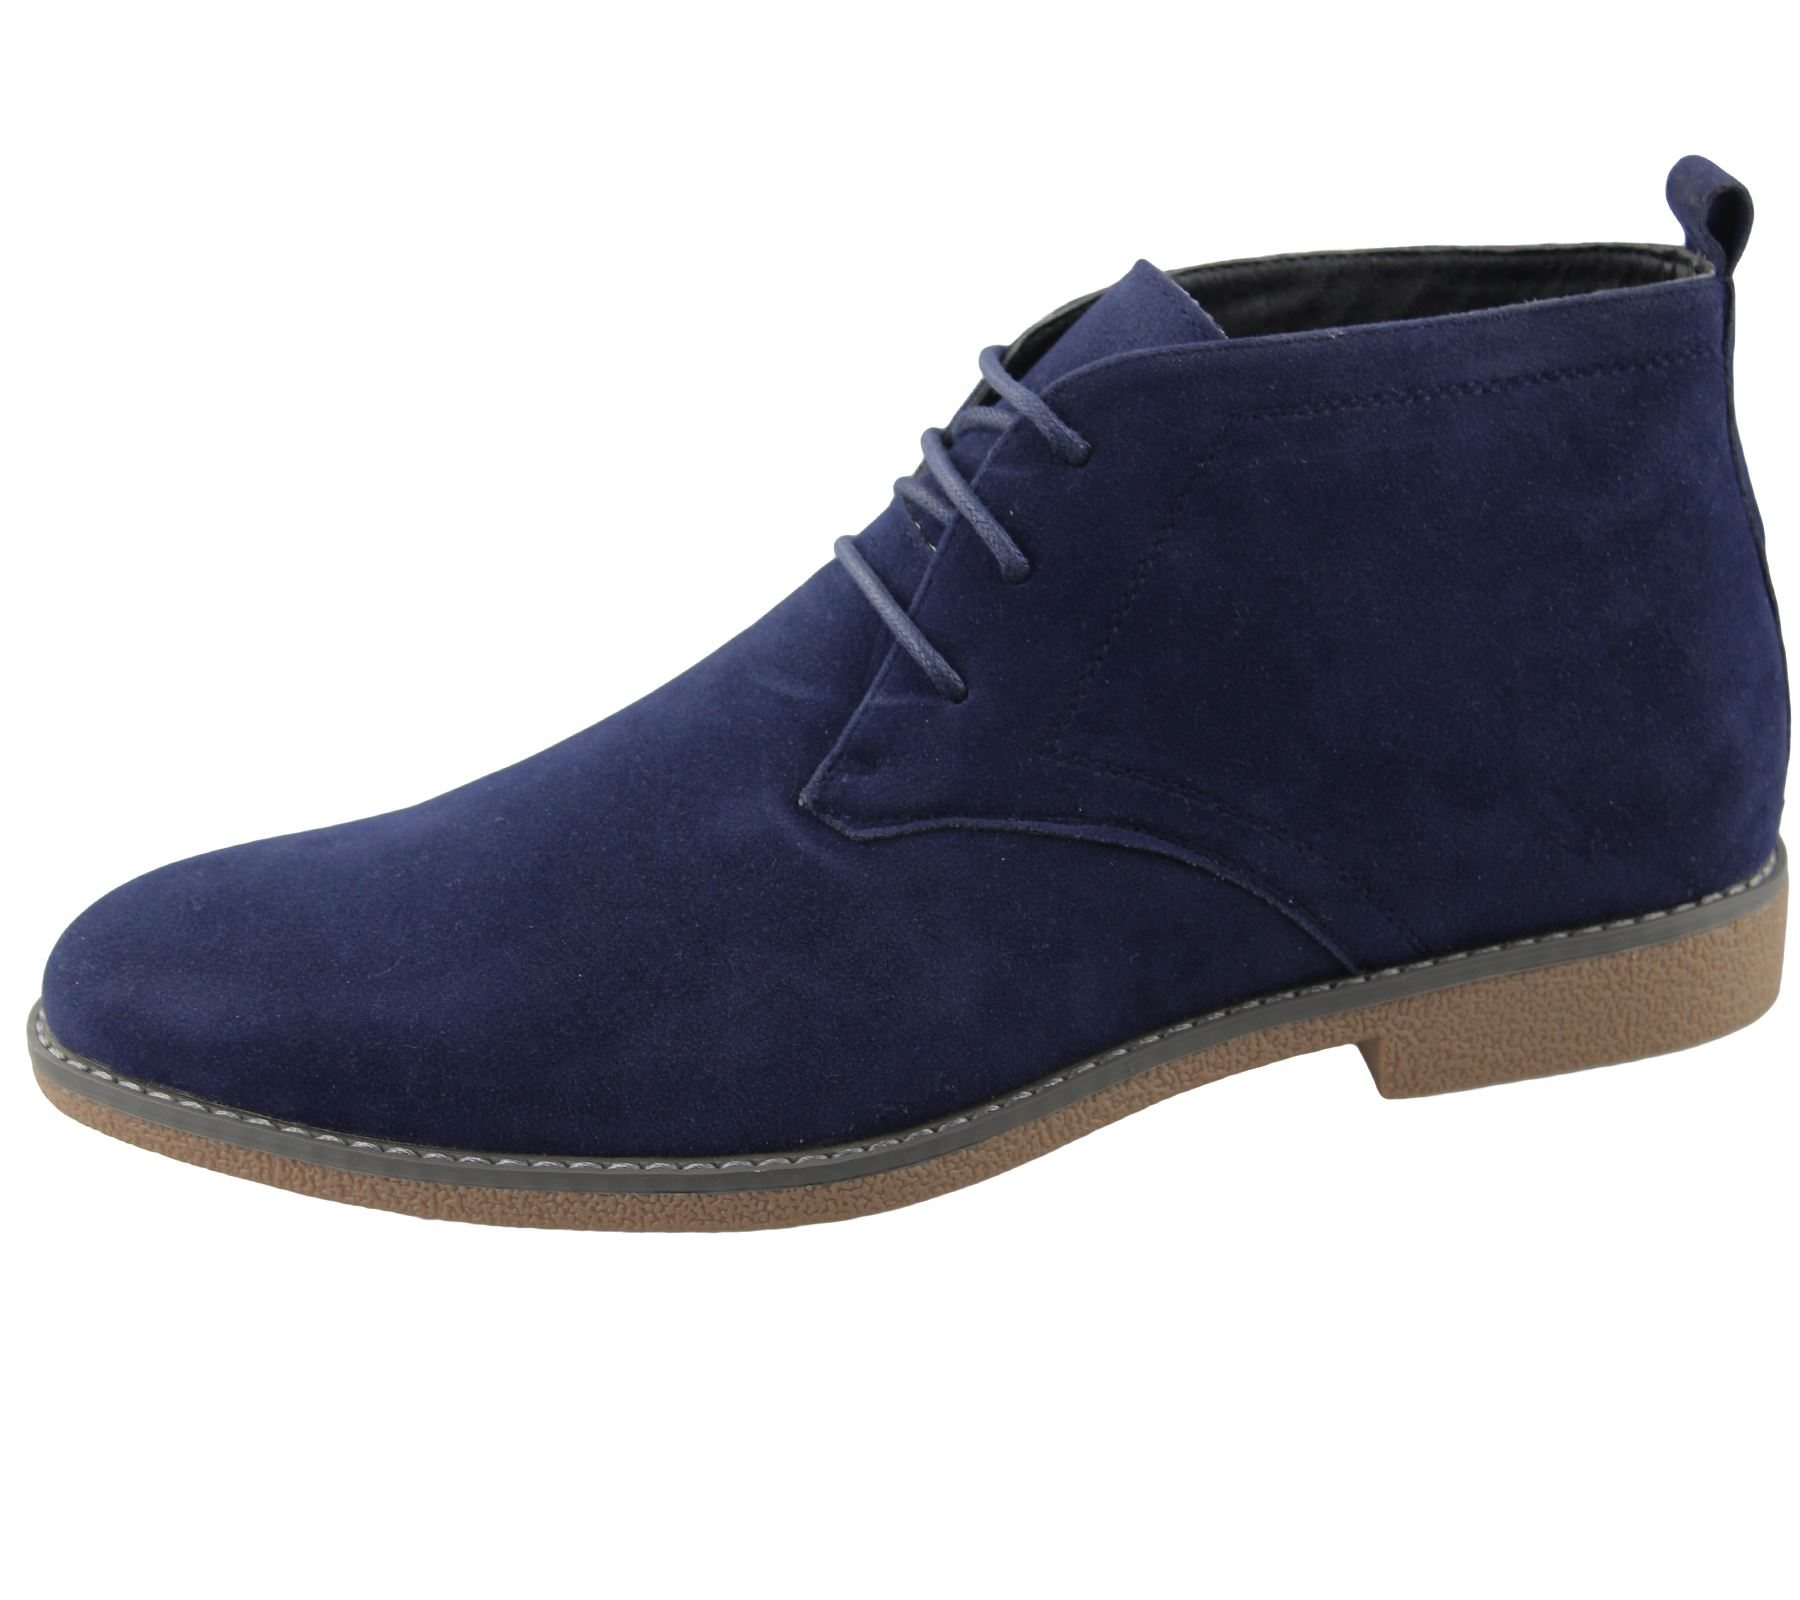 Uk To Us Size Conversion Mens Shoes